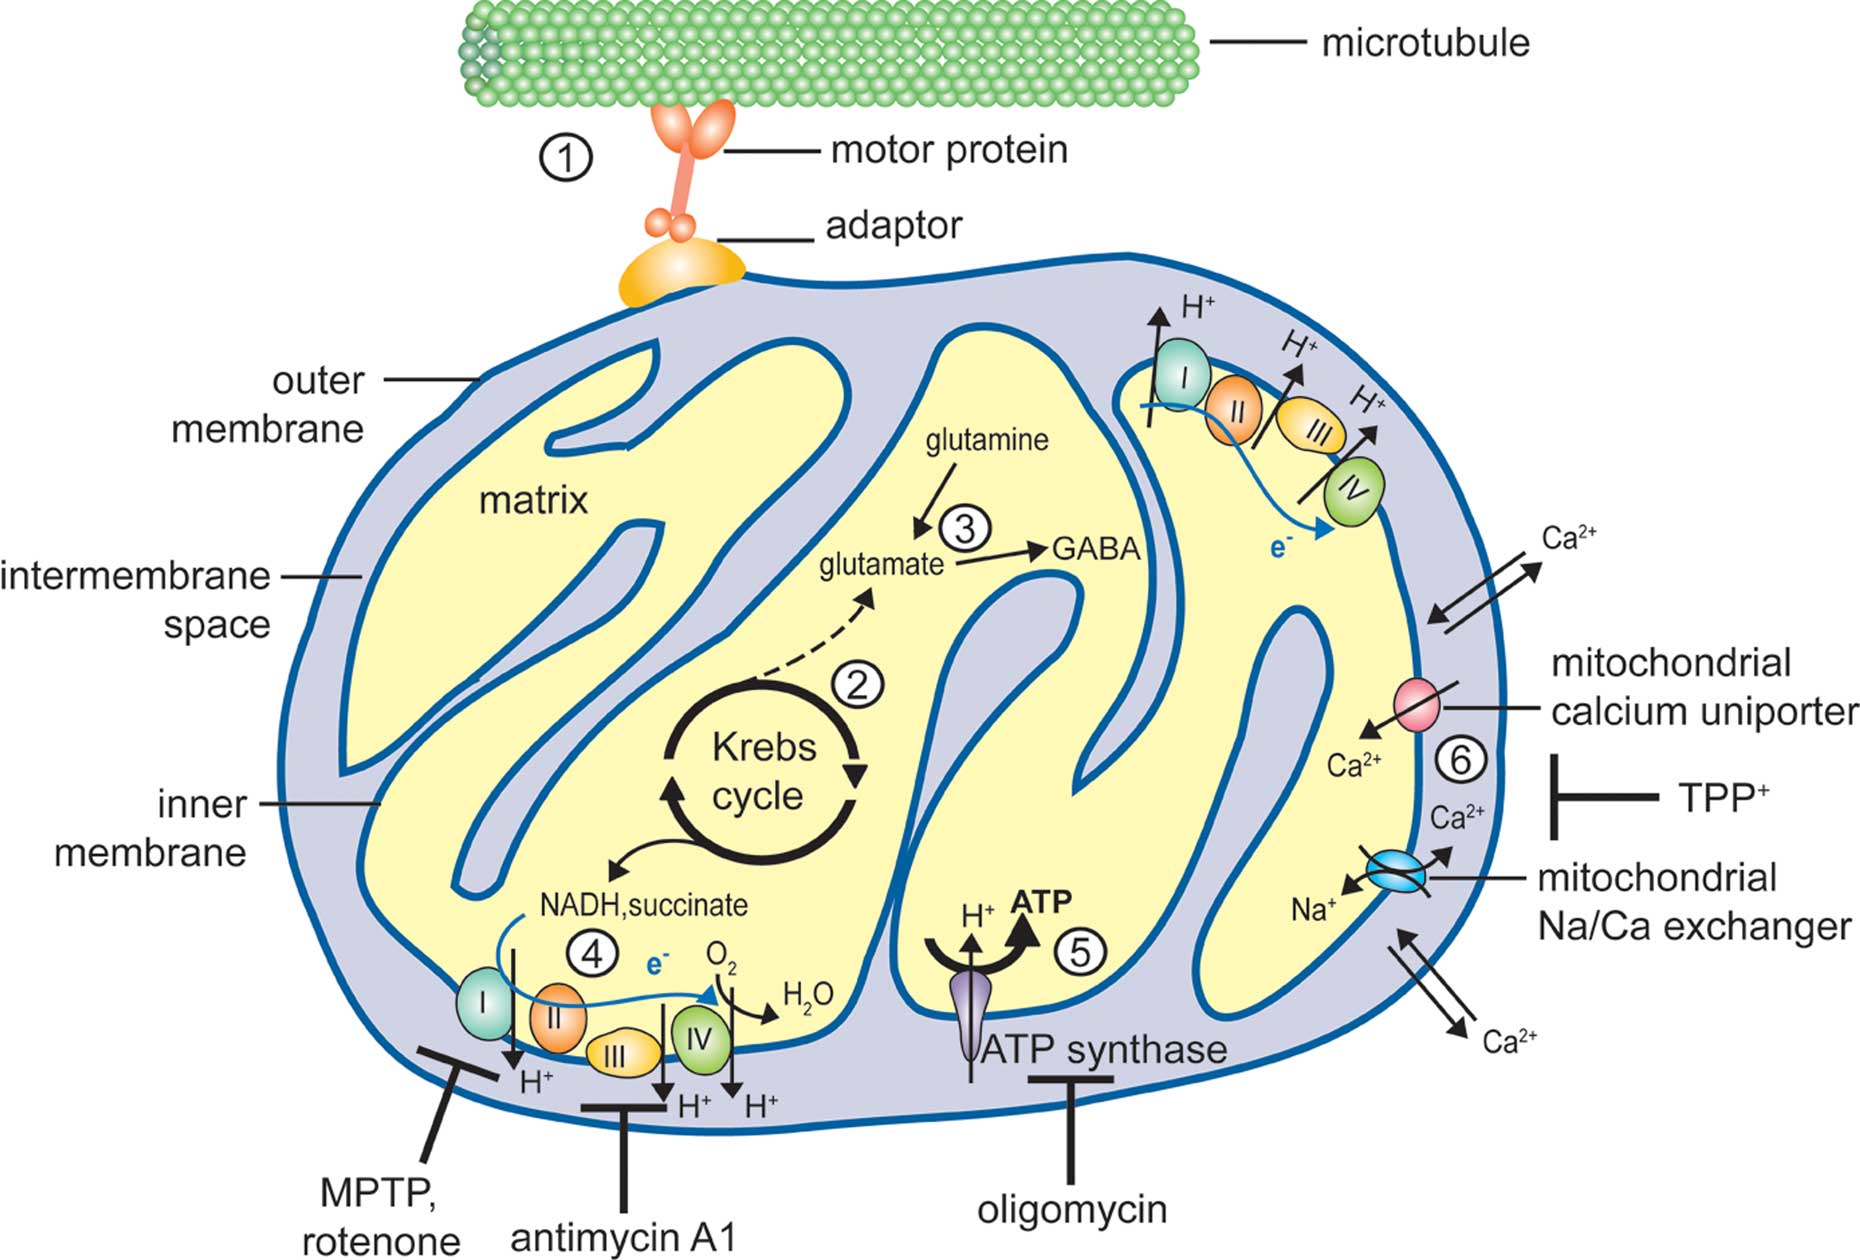 Frontiers | Synaptic Mitochondria in Synaptic Transmission and ...